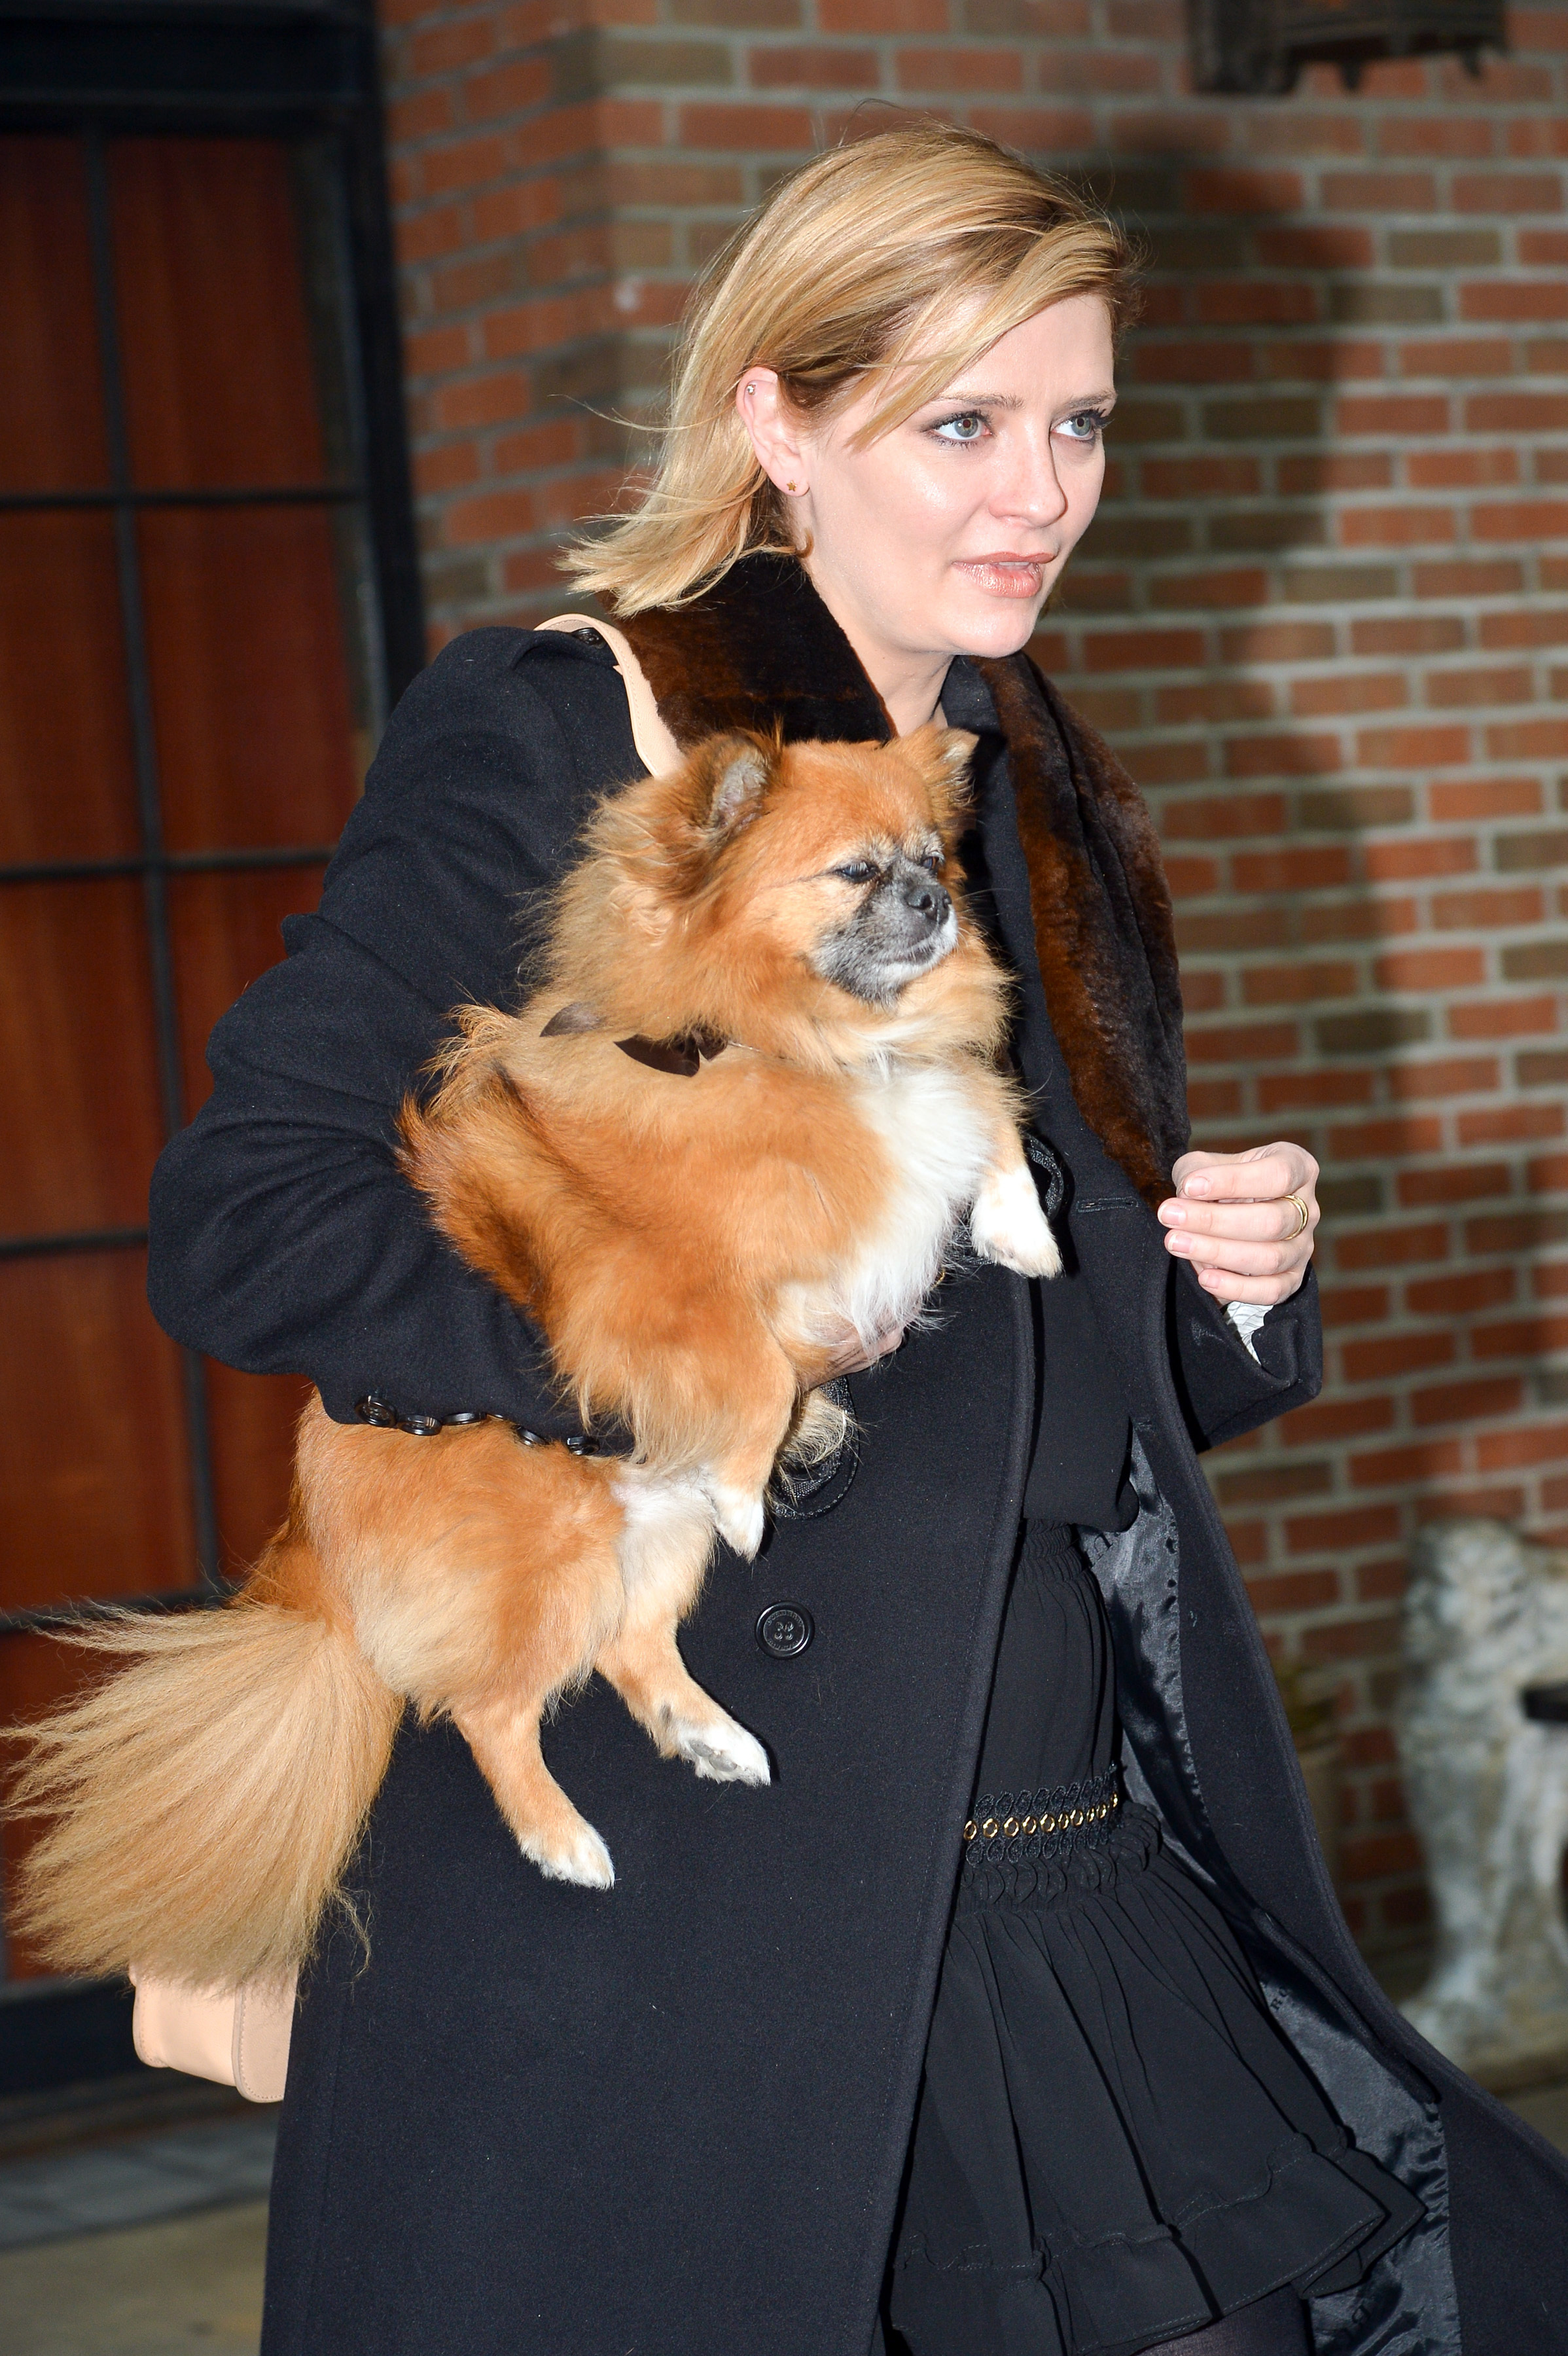 Mischa Barton was seen carrying her dog while out in New York City on Nov. 25, 2017.